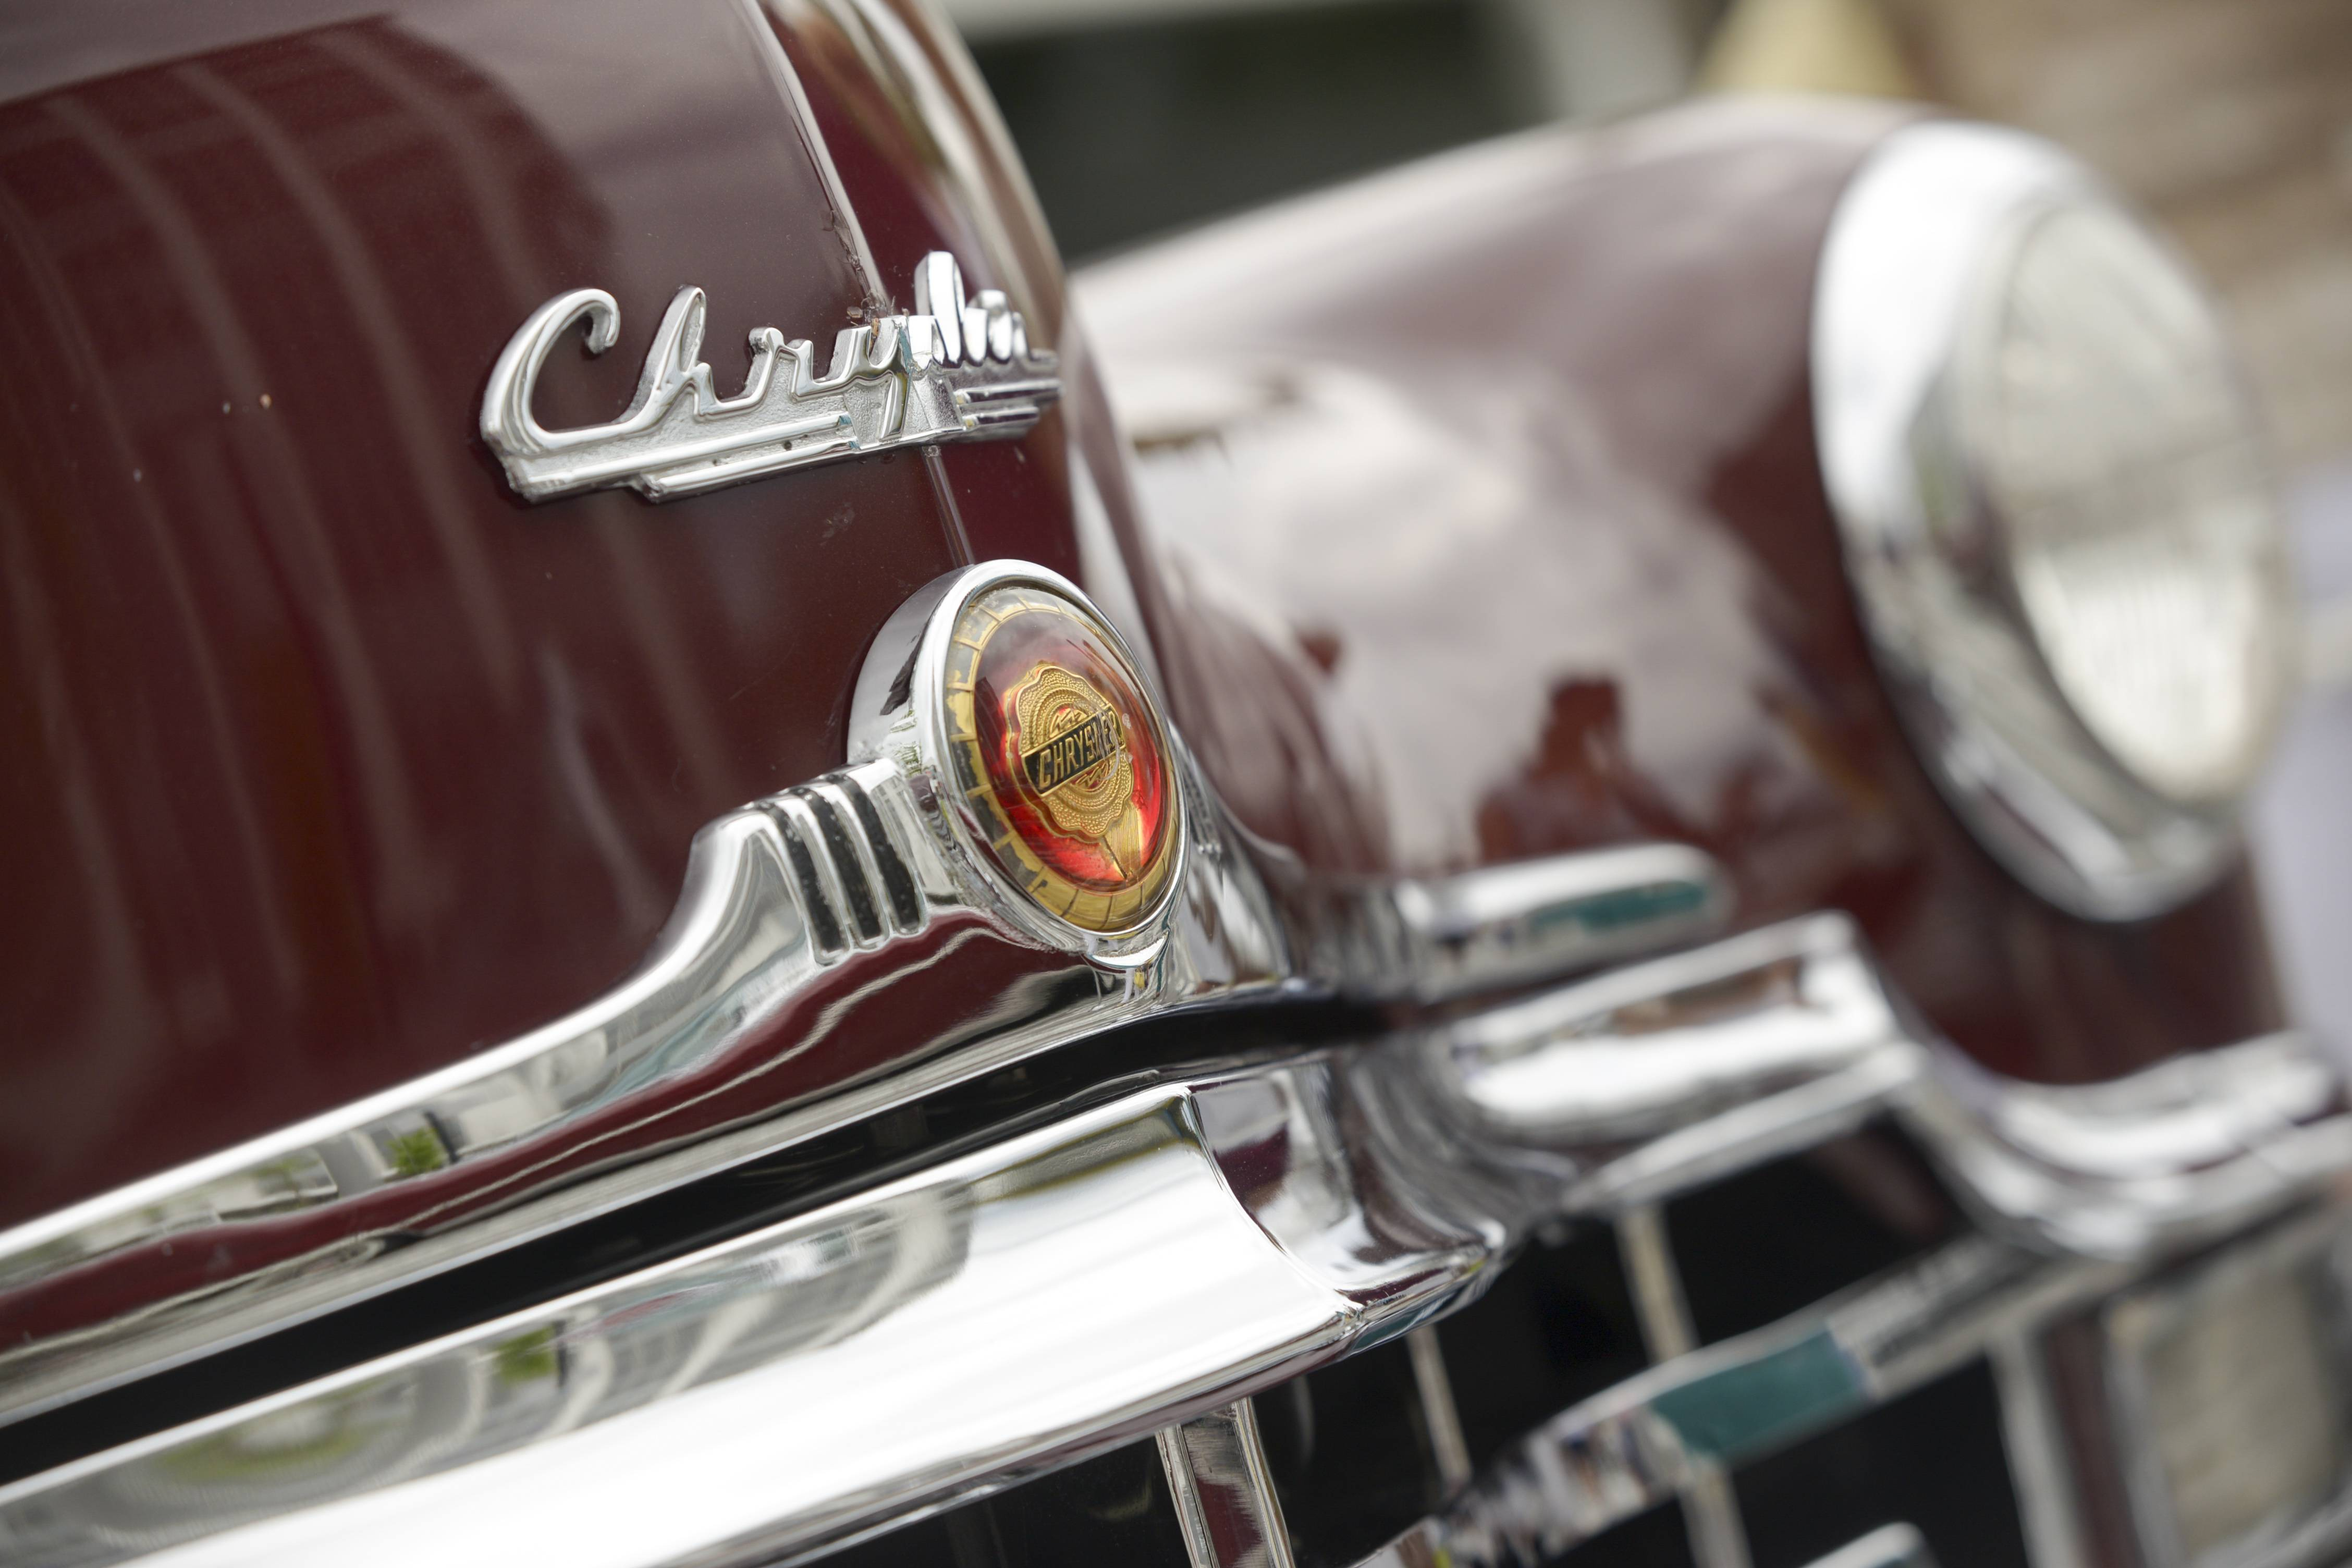 A 1949 Chrysler Town and Country was among the attractions at the 46th annual Father's Day Classic Car Show Sunday at Oakbrook Center.